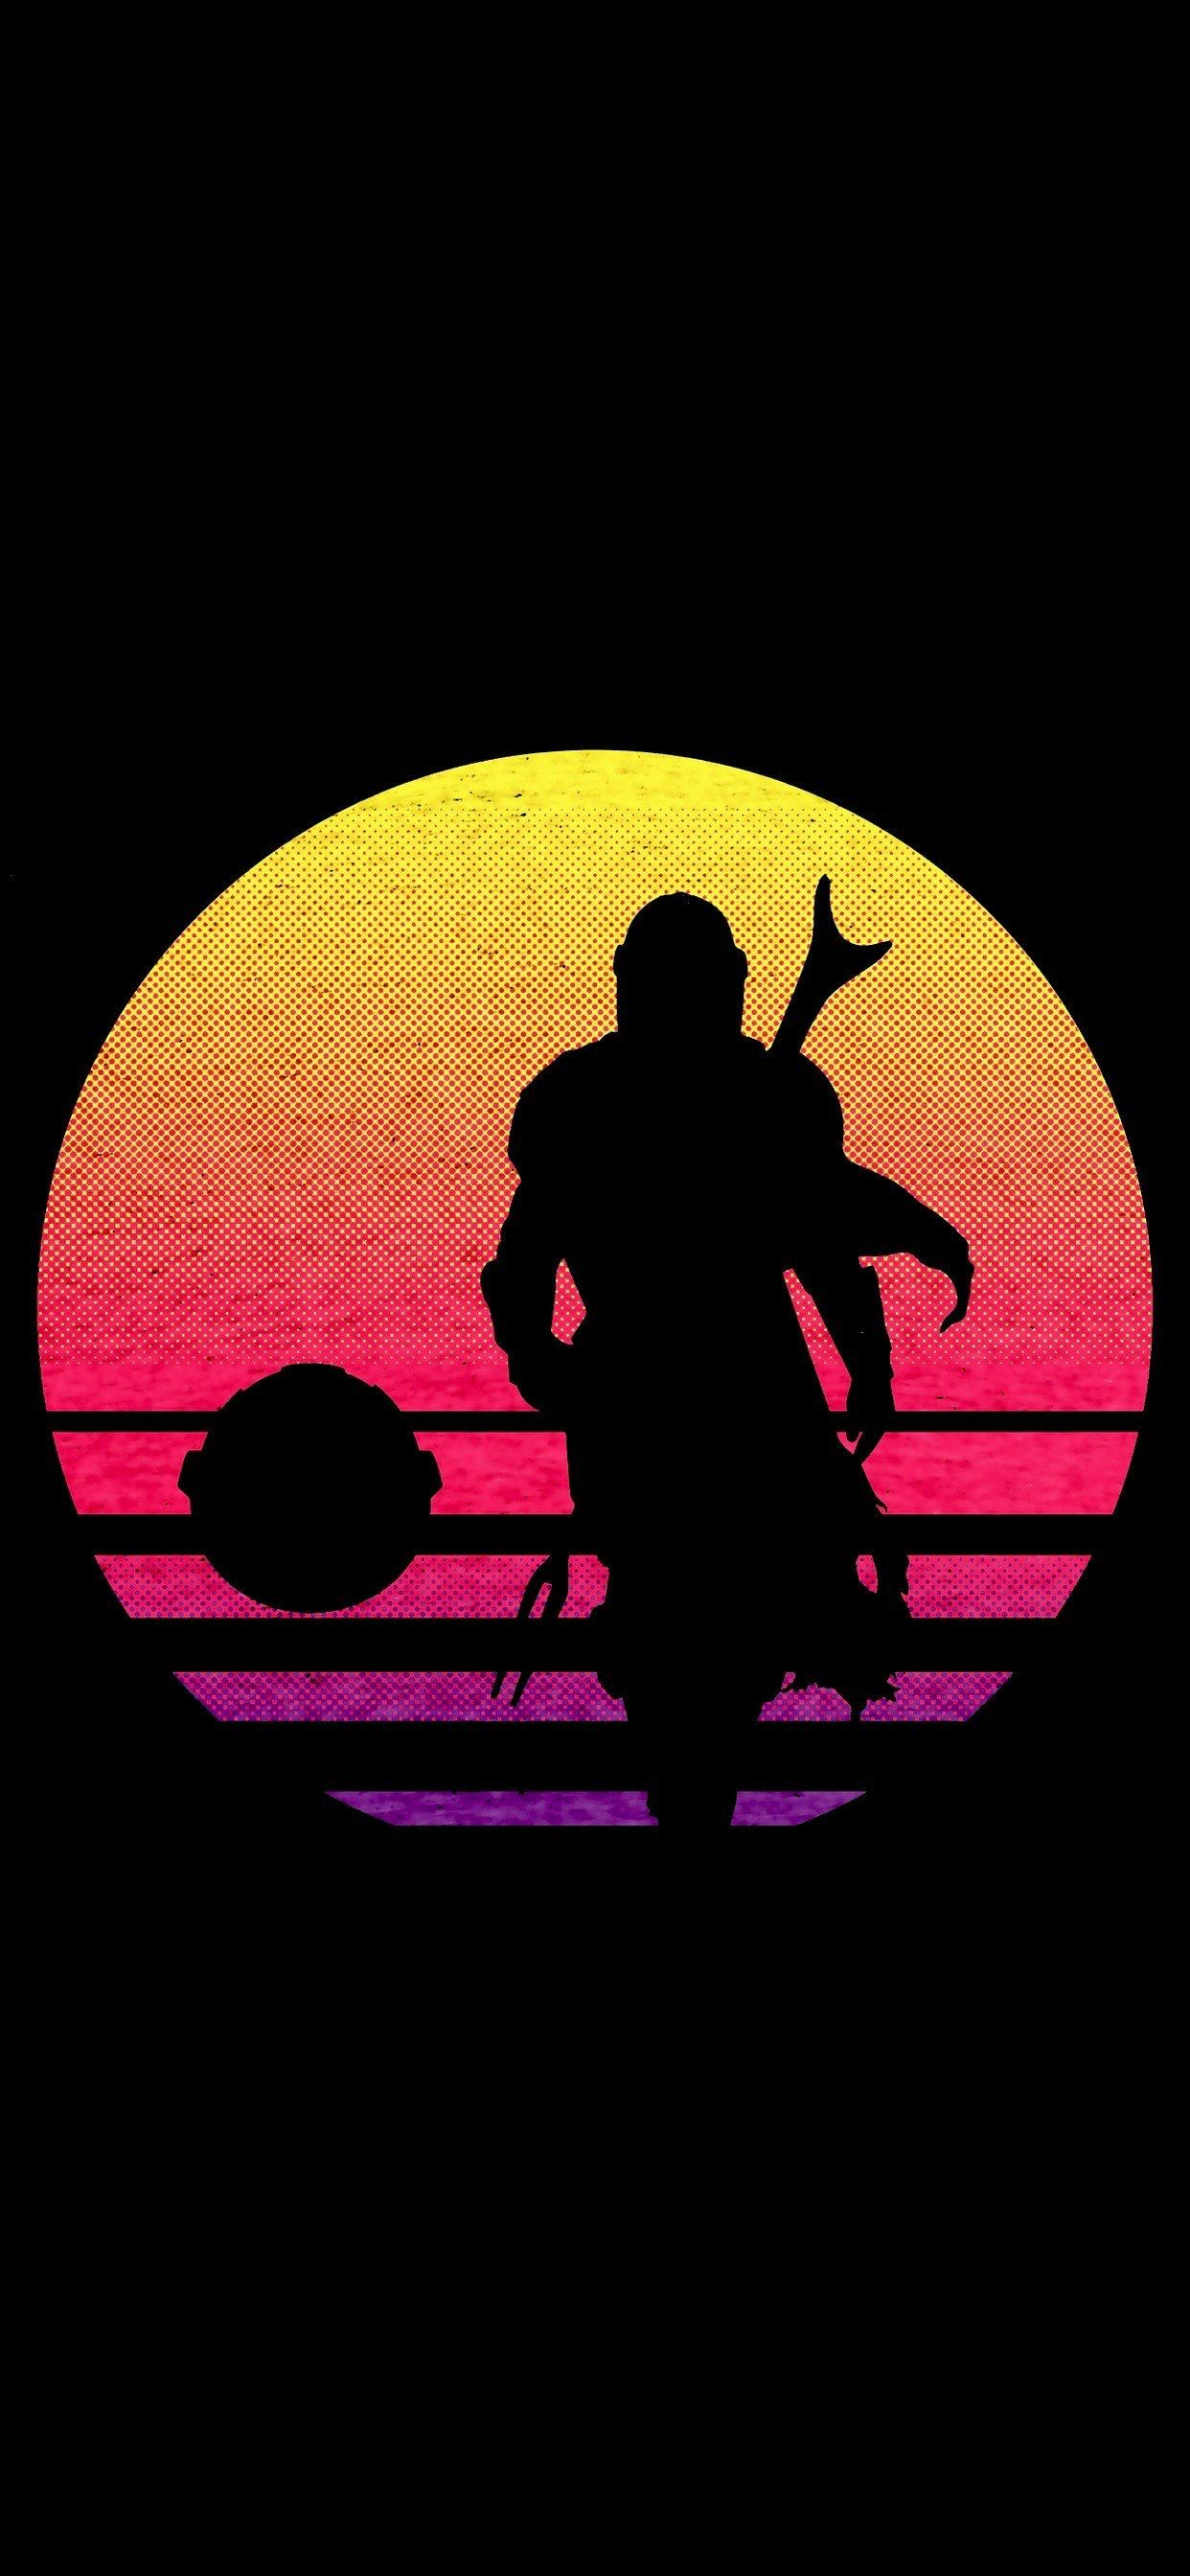 The Mandalorian Iphone Wallpaper In 2020 Star Wars Background Star Wars Poster Star Wars Silhouette